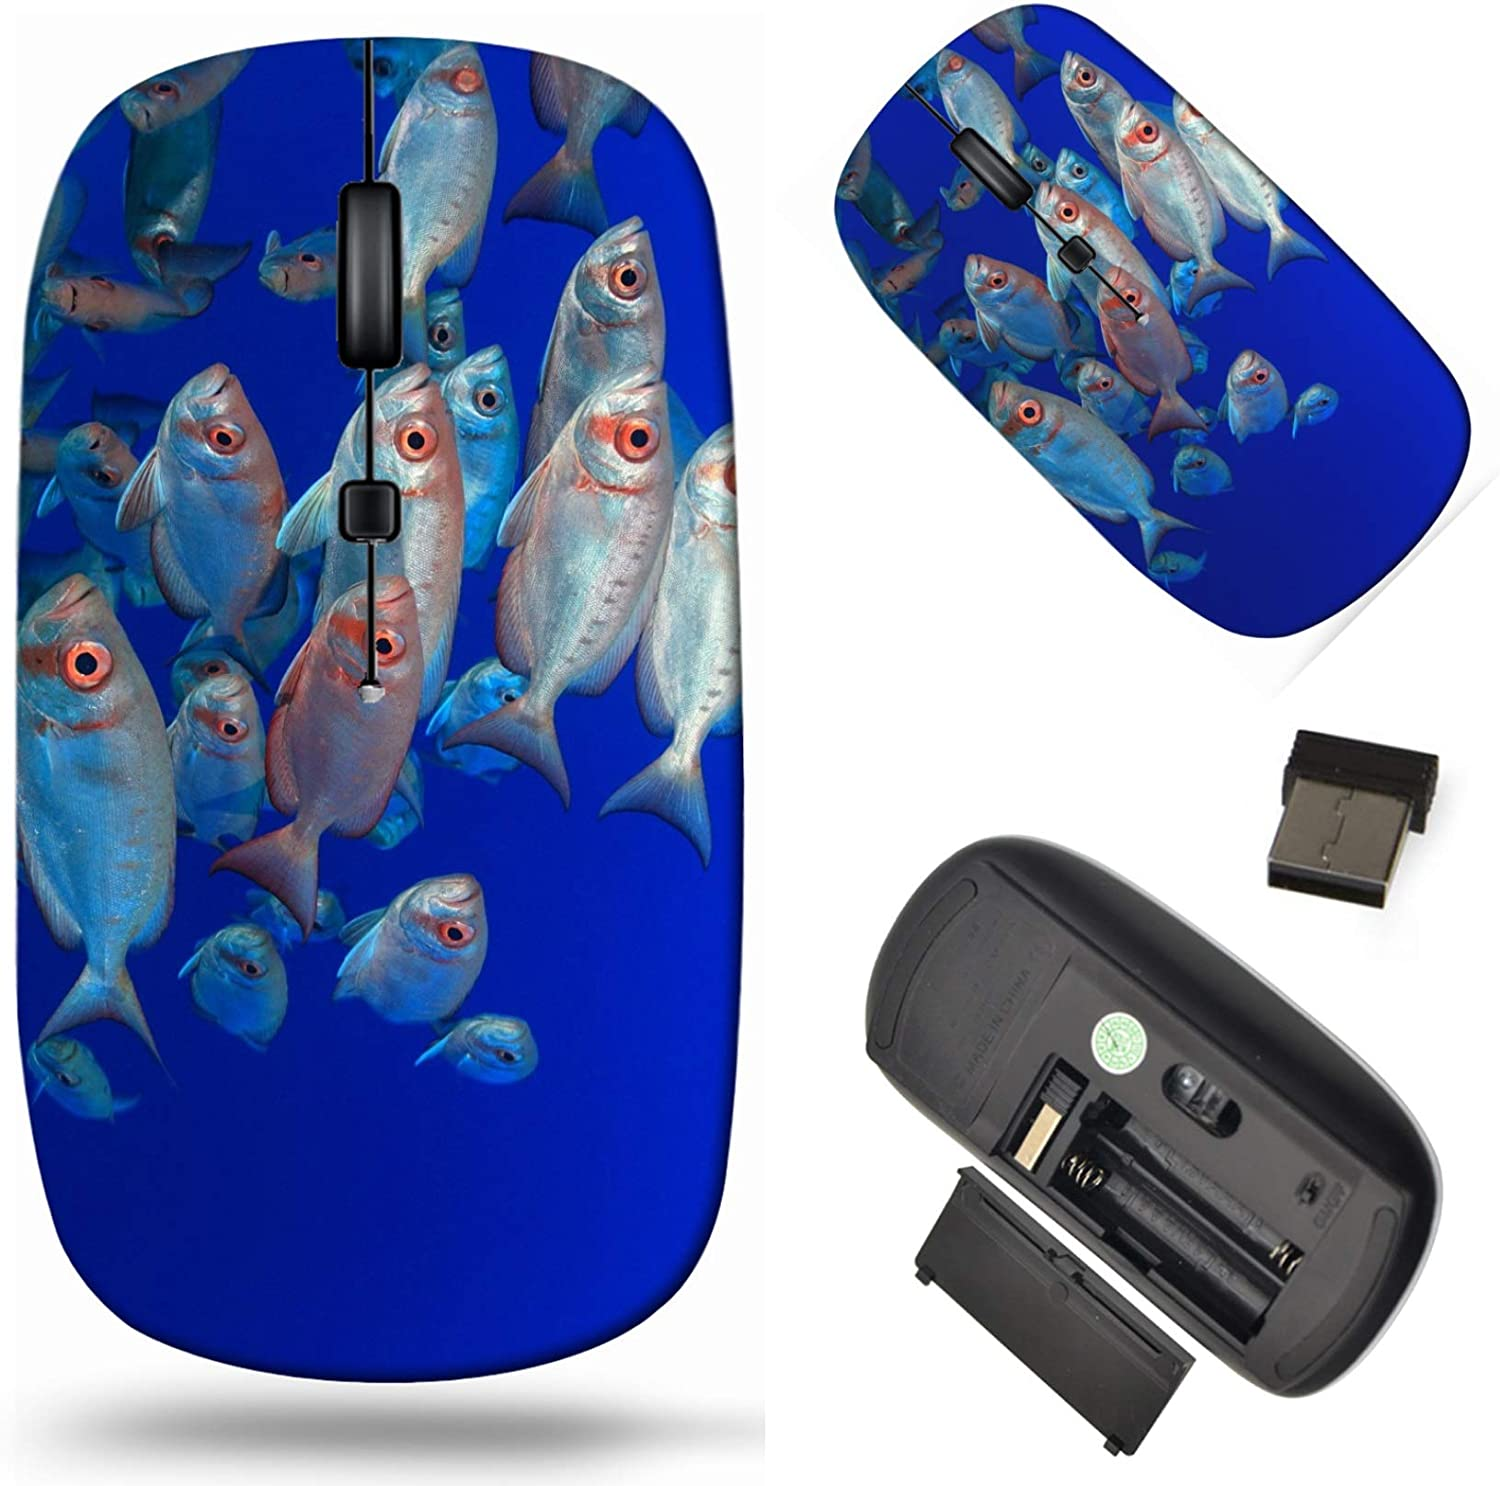 Wireless Computer Mouse 2.4G store Max 72% OFF with Cor Laptop USB Receiver